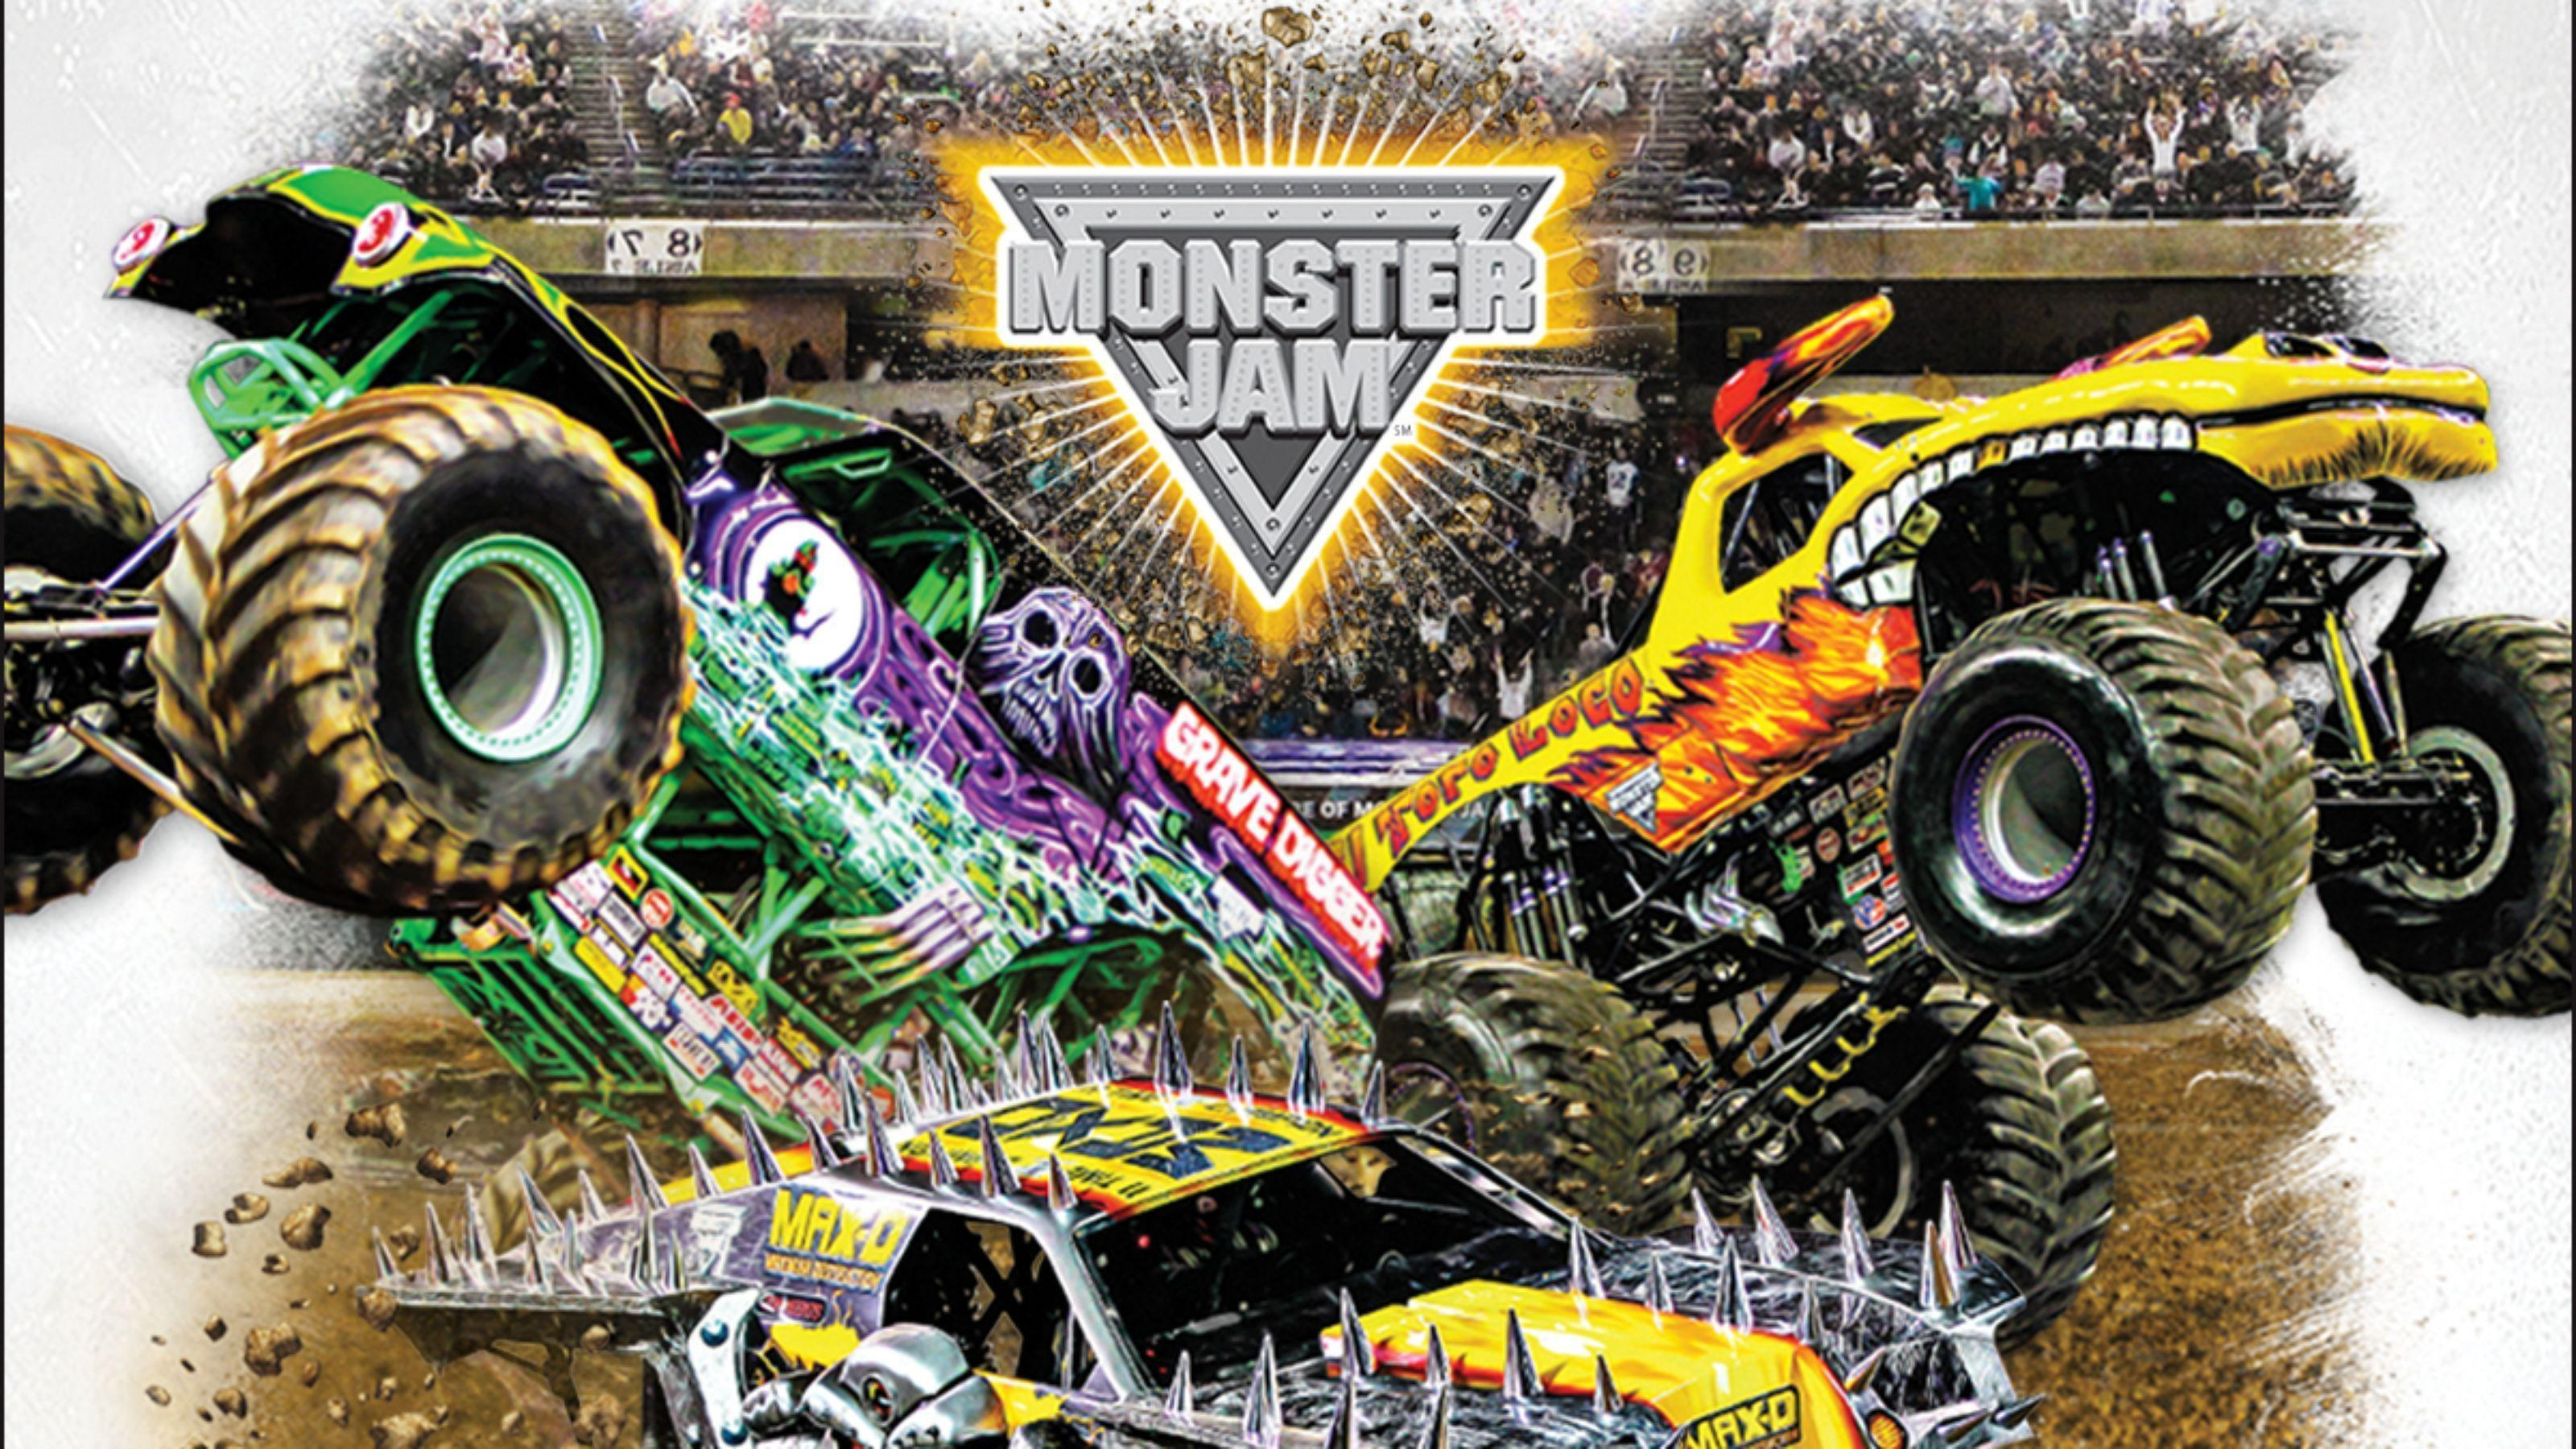 Monster Jam Wallpapers High Quality | Download Free